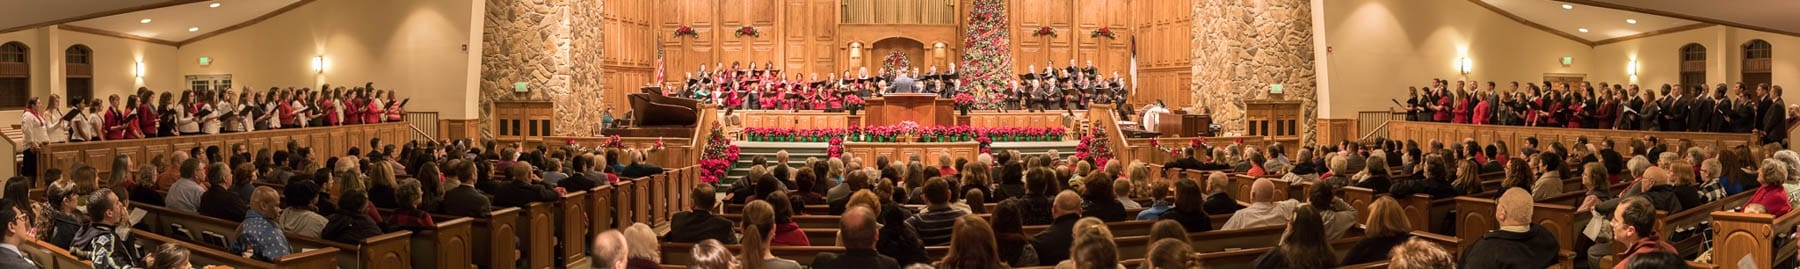 Fairhaven Baptist Church Glory of Christmas Concert 2015 (11 of 16)